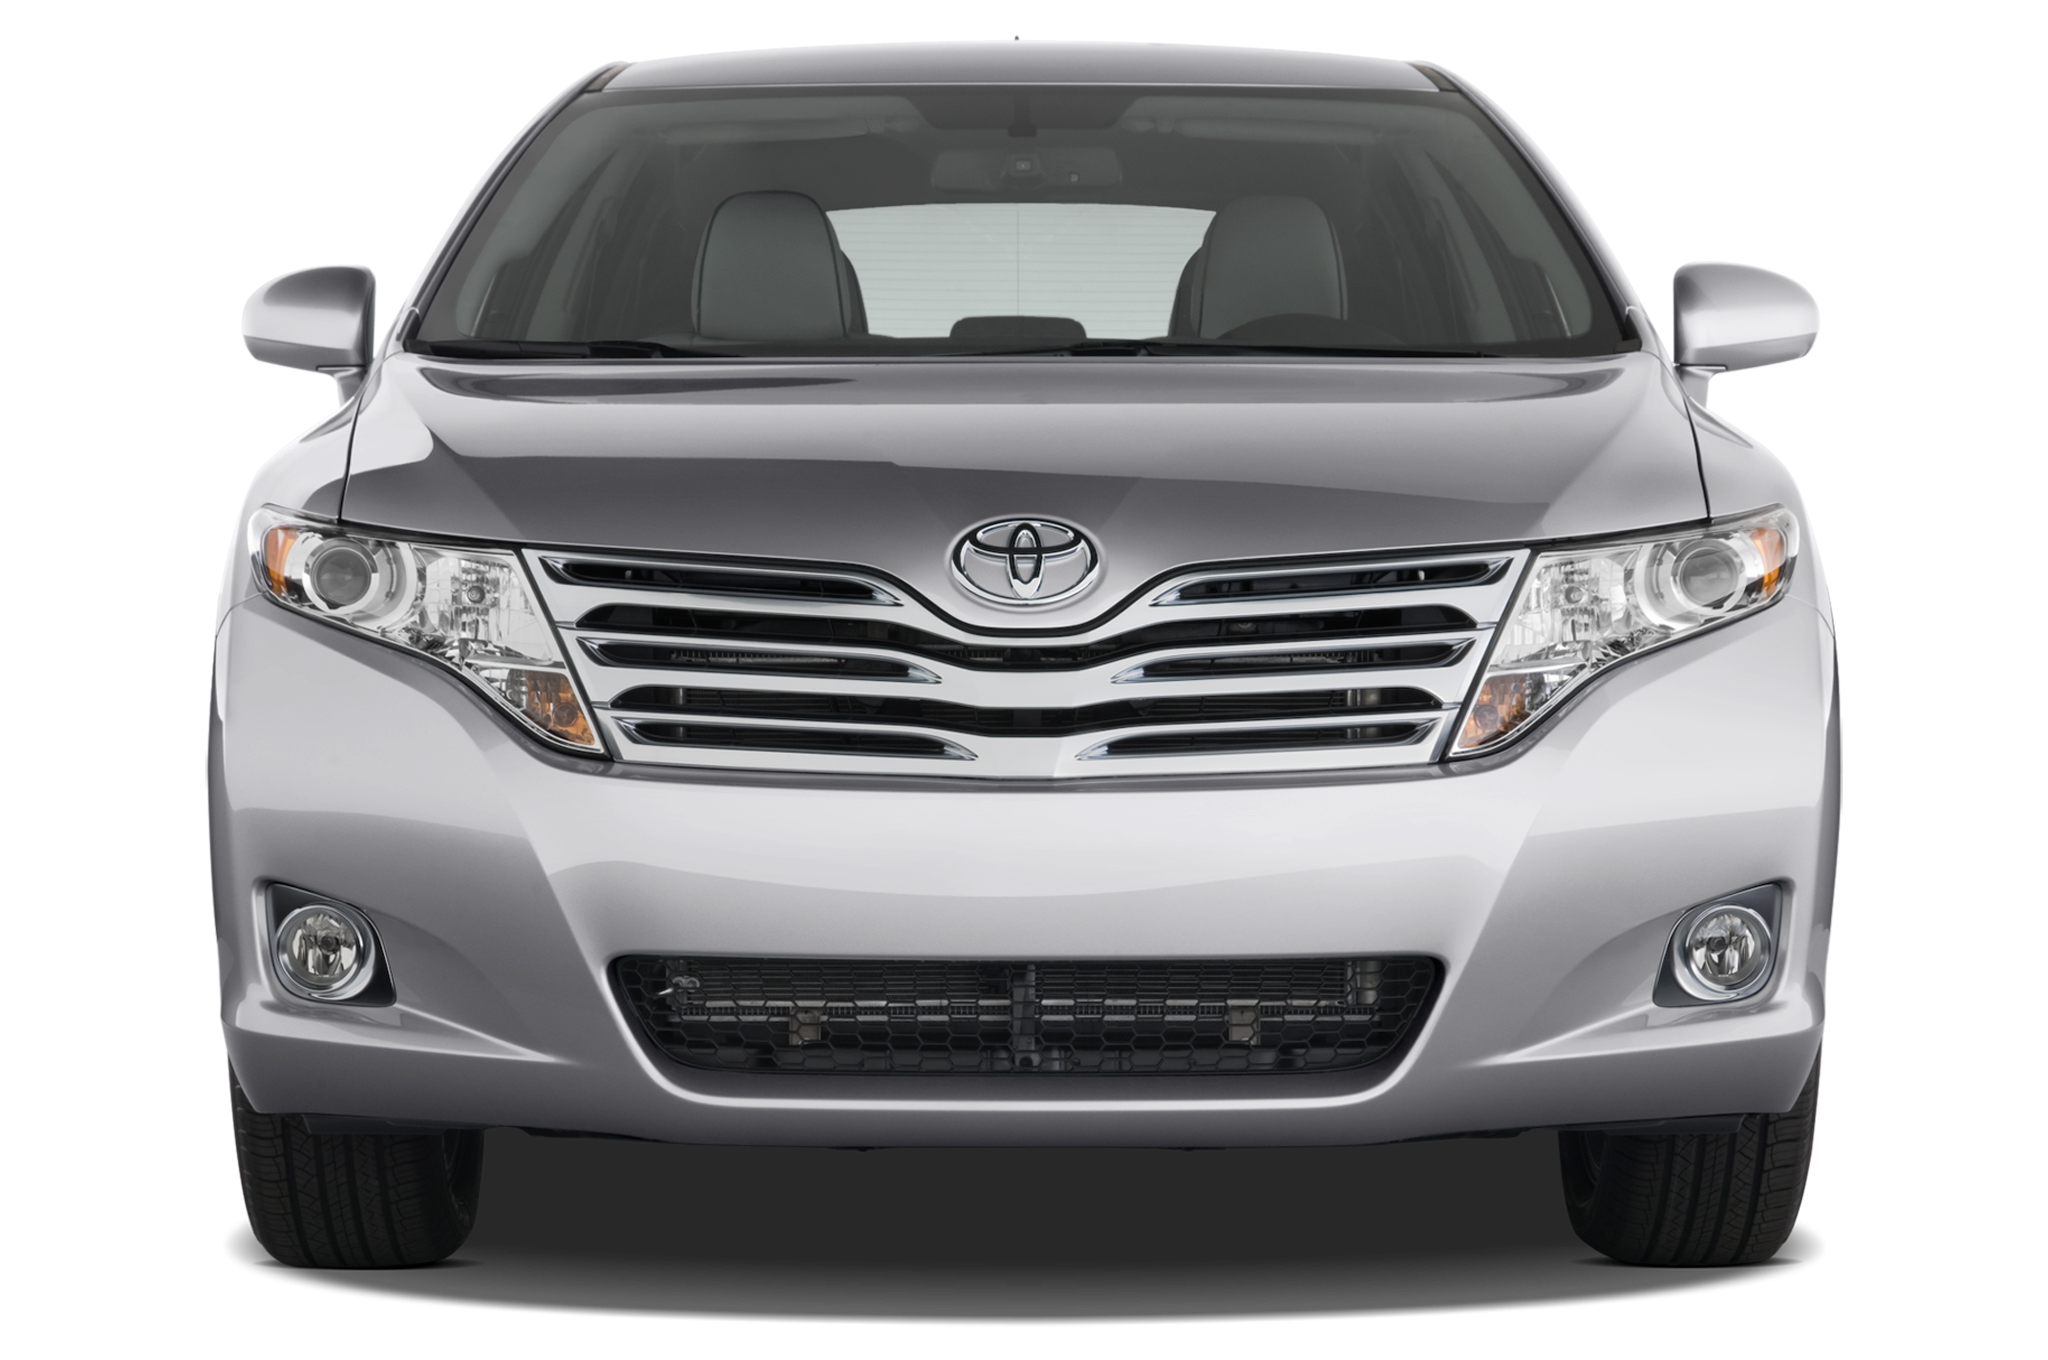 Toyota Venza 2010 International Price Overview